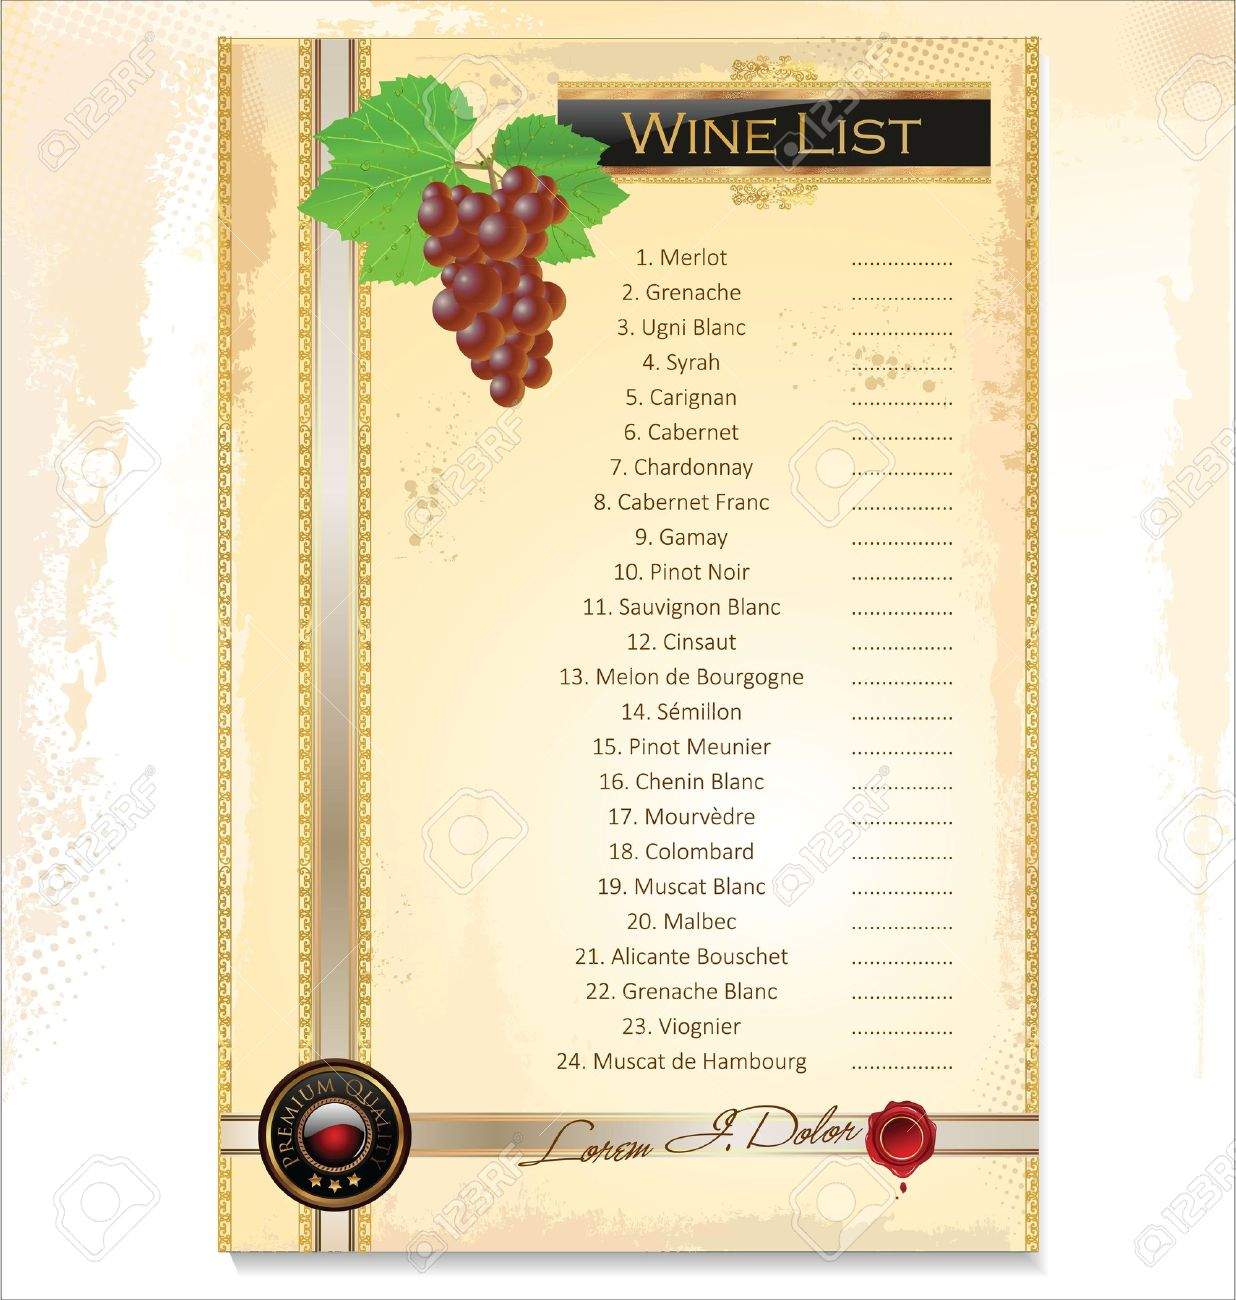 Wine menu template with a price list royalty free cliparts wine menu template with a price list stock vector 19462927 pronofoot35fo Gallery